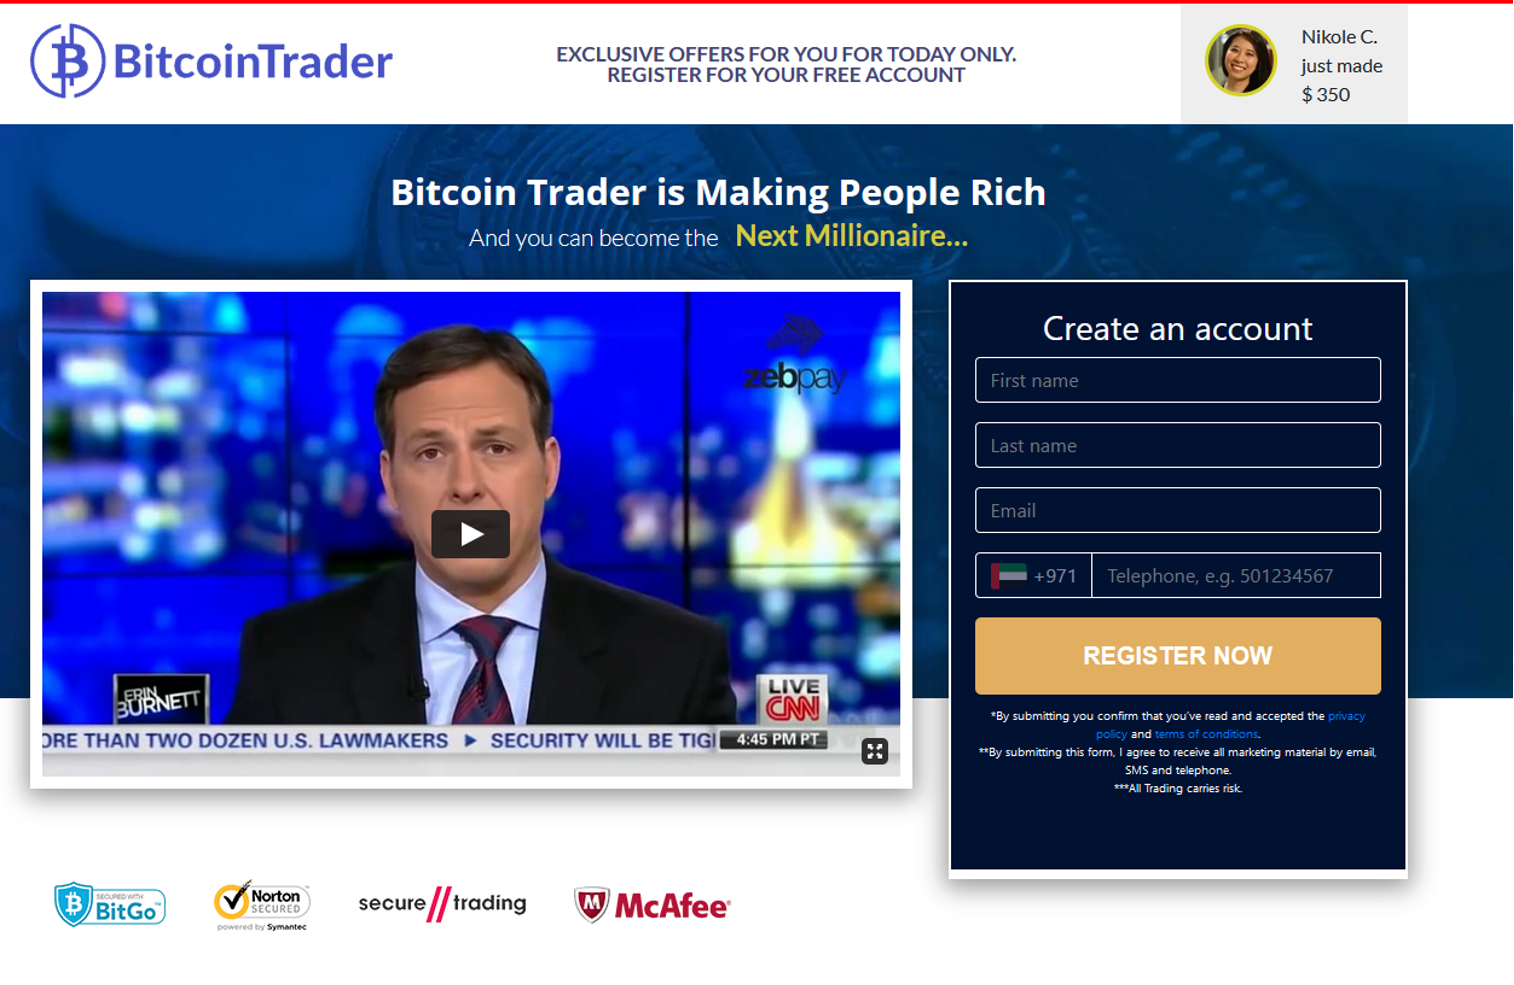 Homepage of Bitcoin Trader site